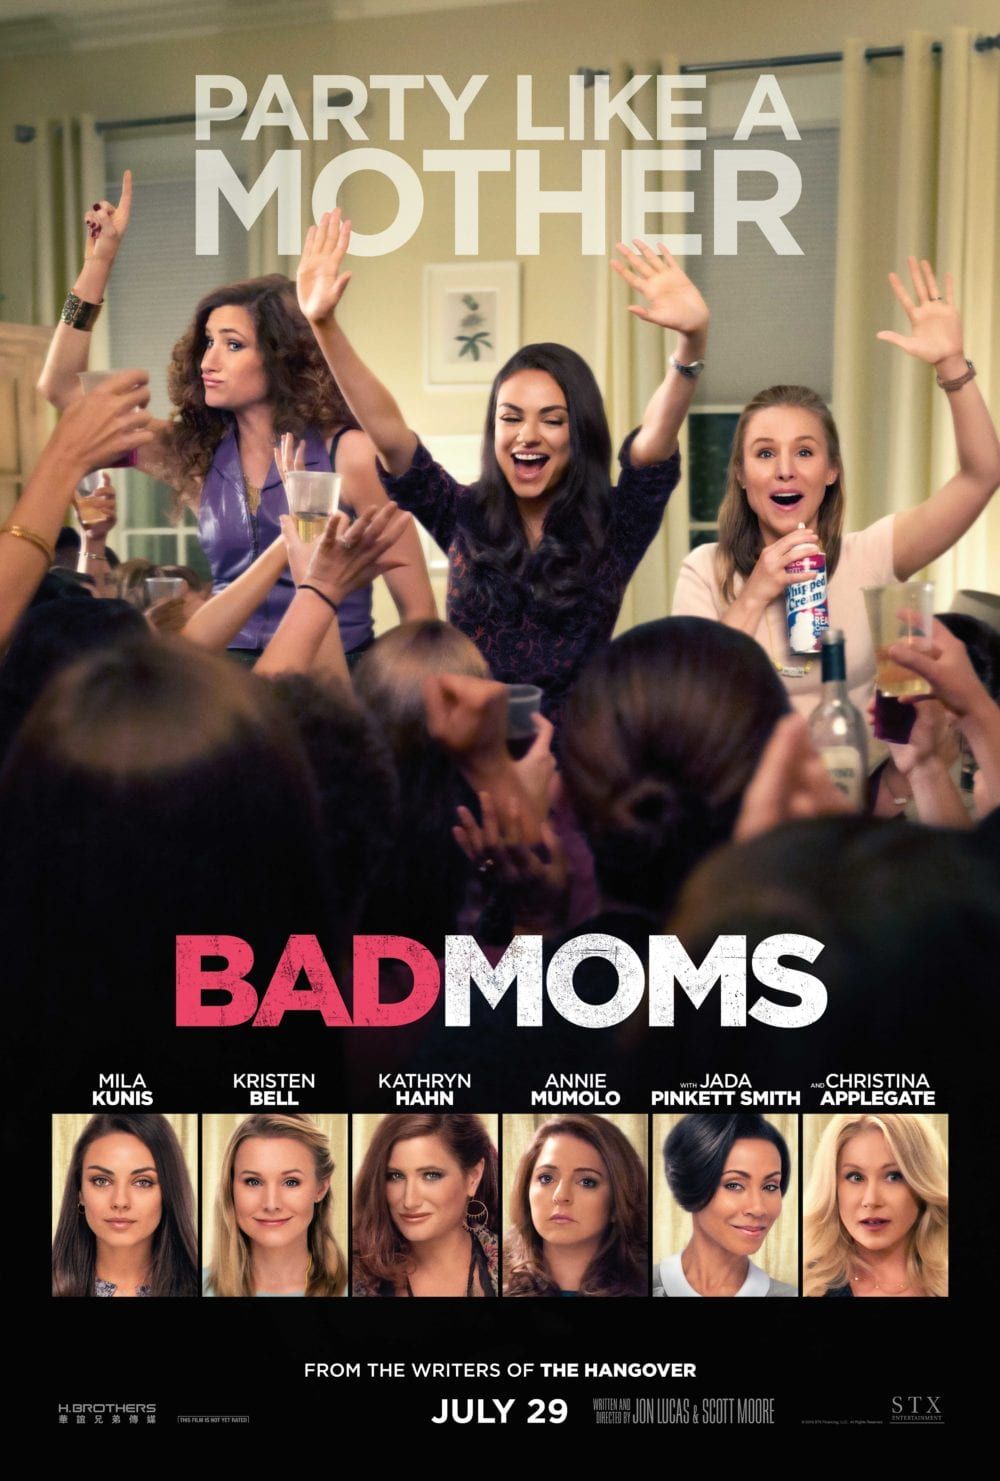 Bad Moms Contest - What's Your Bad Mom Moment?